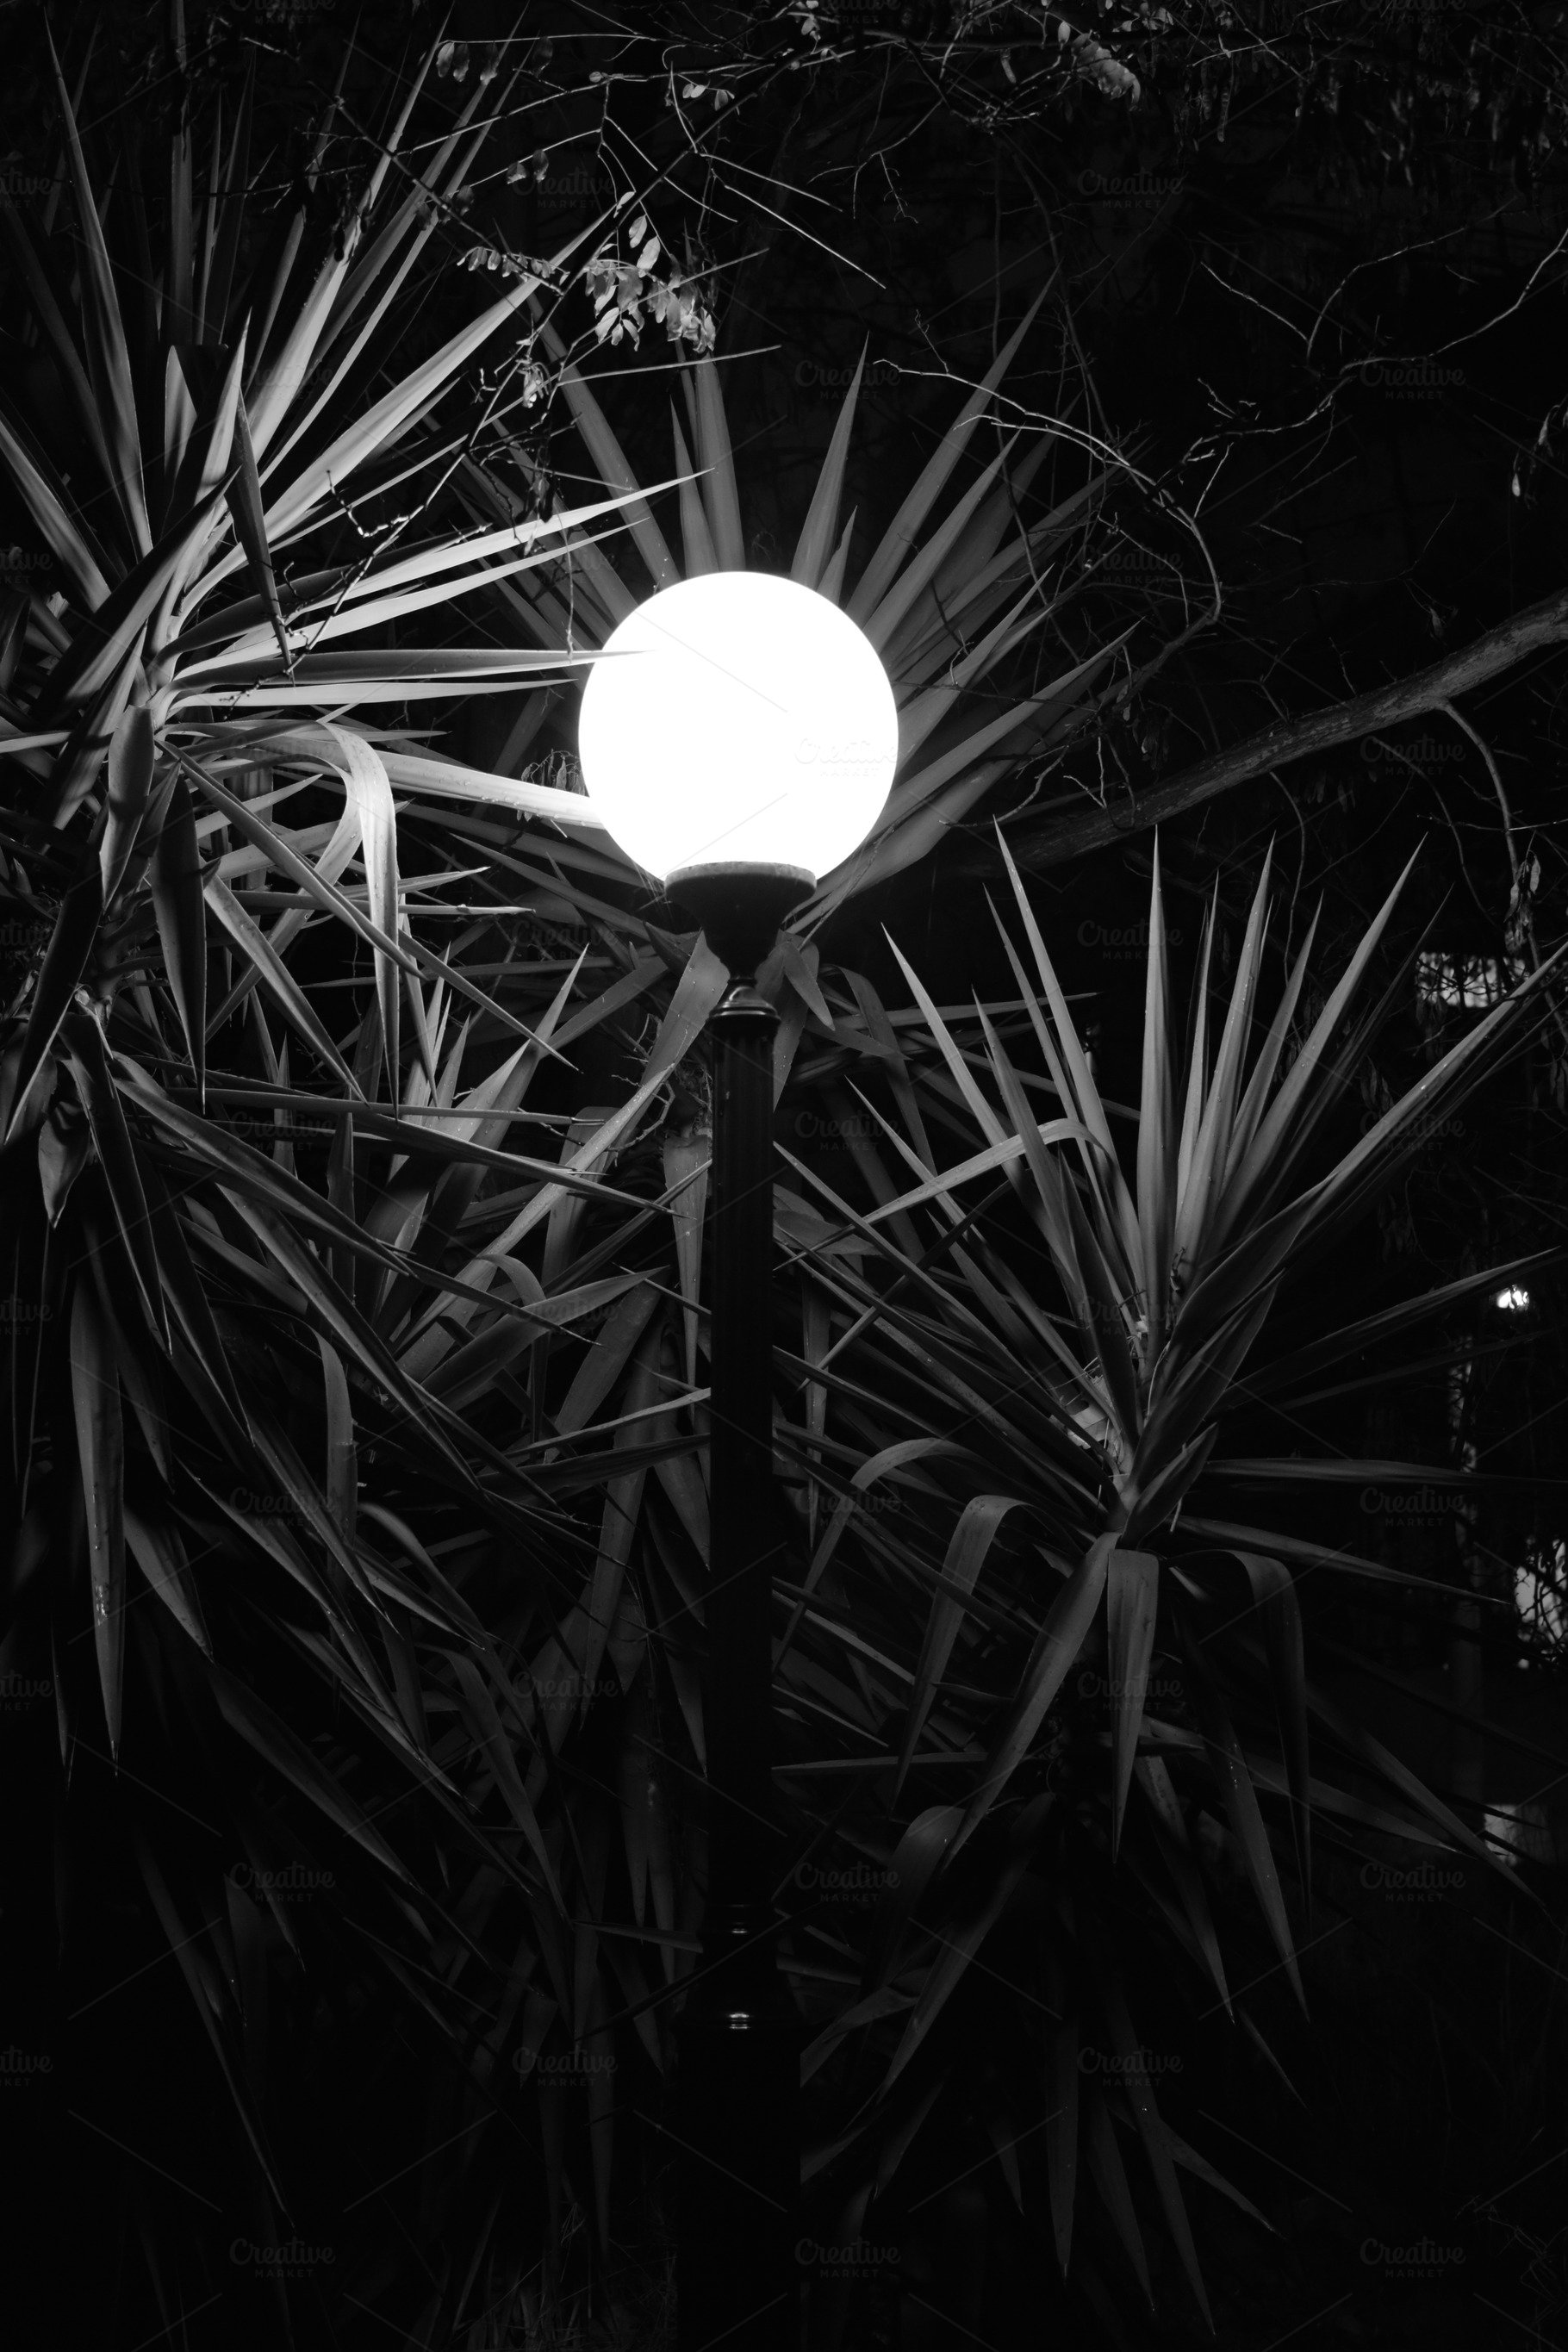 Street Light Plants Night High Quality Nature Stock Photos